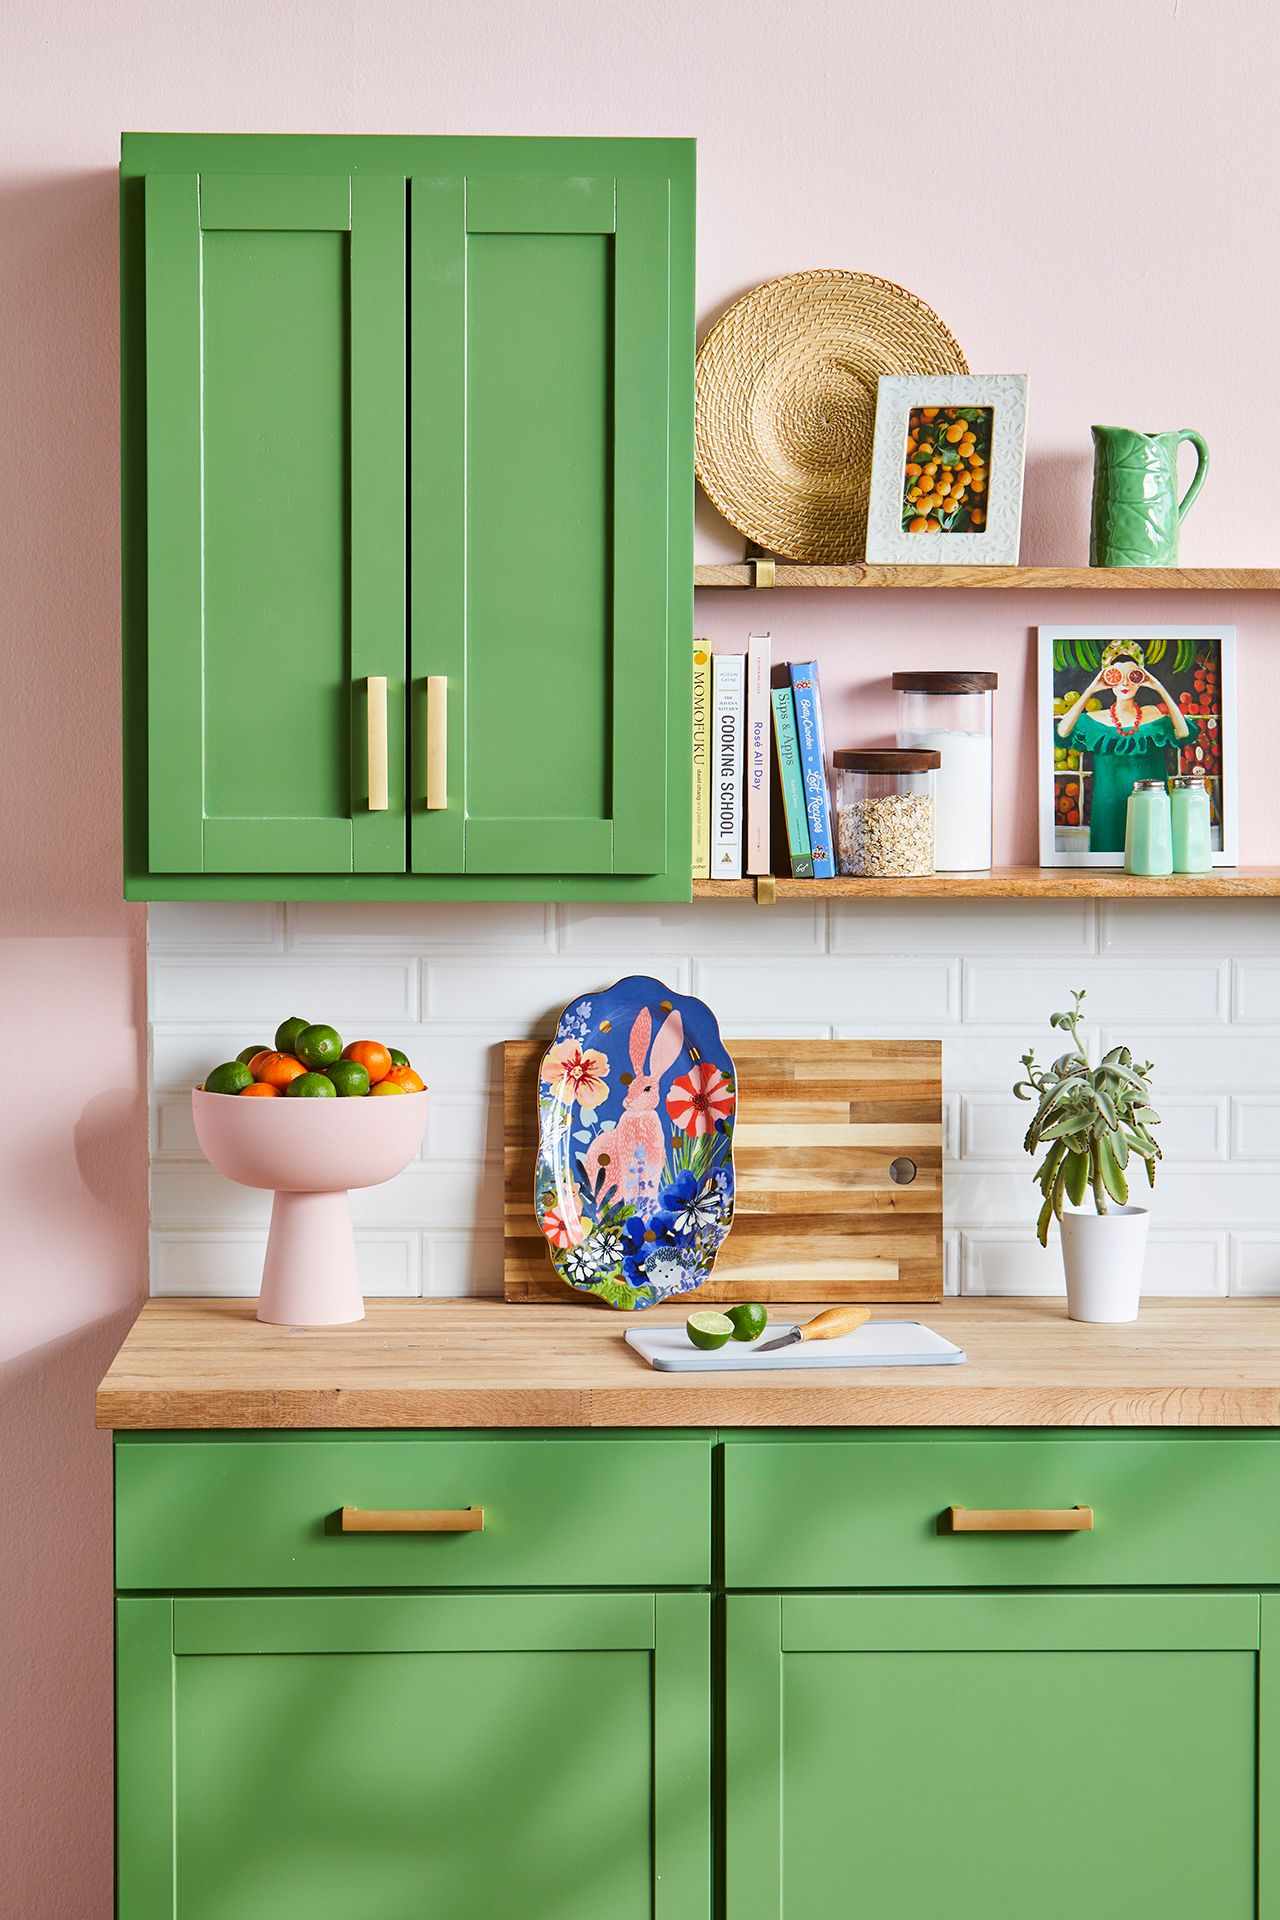 Easy Way To Make Own Kitchen Cabinets How To Build Your Own Cabinet Door For A Custom Look In 2019